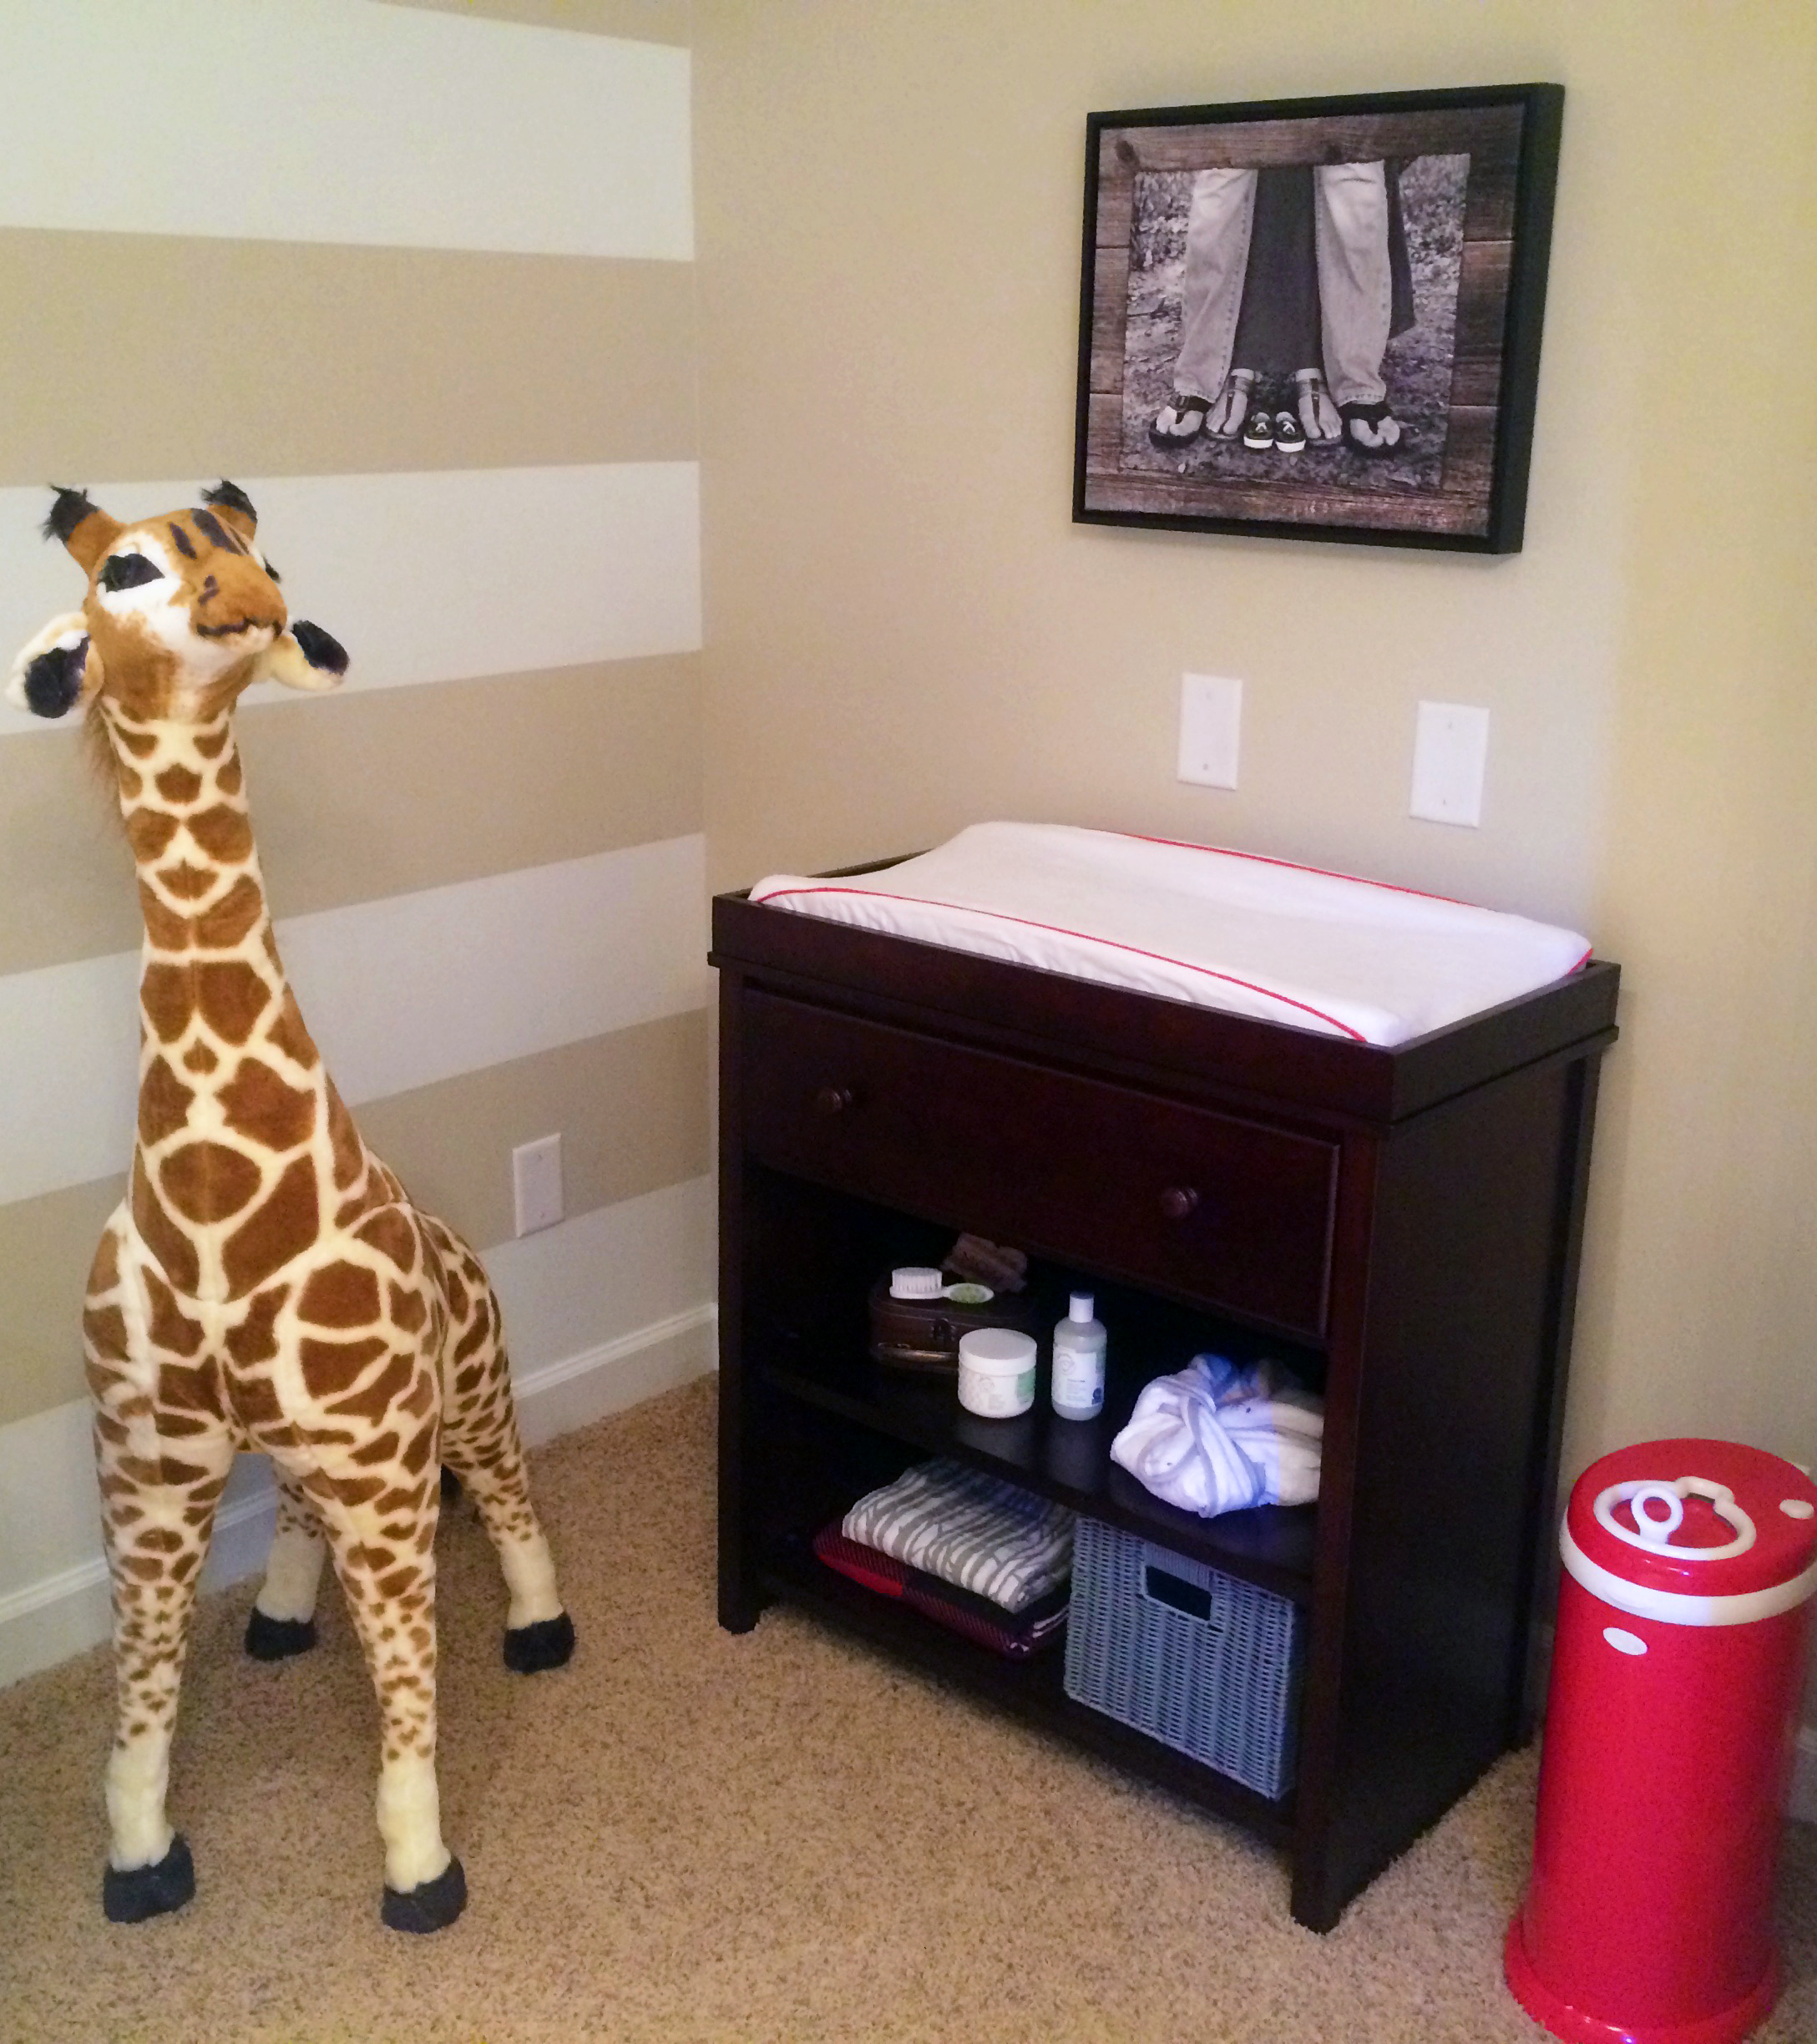 Fisher Price Changer, Large Stuffed Giraffe and Ubbi Diaper Pail